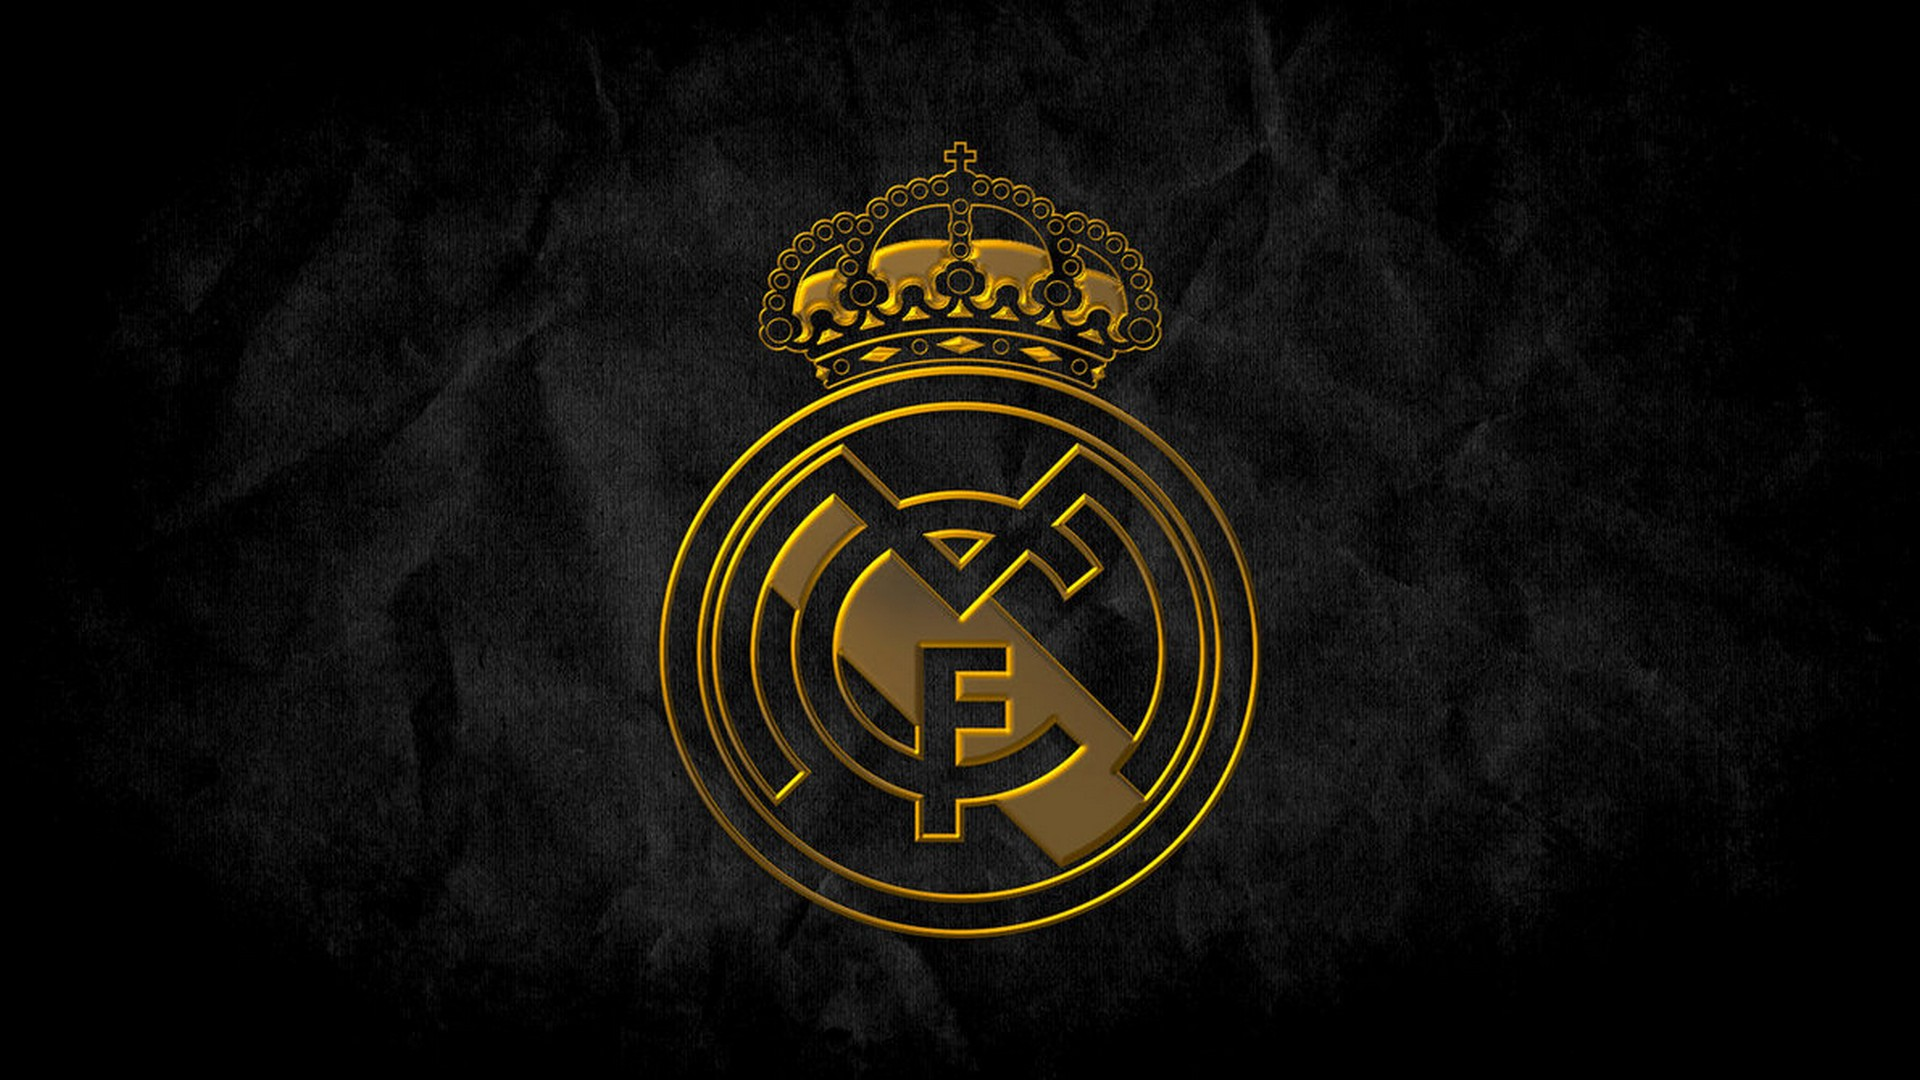 Real Madrid CF HD Wallpapers with resolution 1920x1080 pixel. You can make this wallpaper for your Mac or Windows Desktop Background, iPhone, Android or Tablet and another Smartphone device